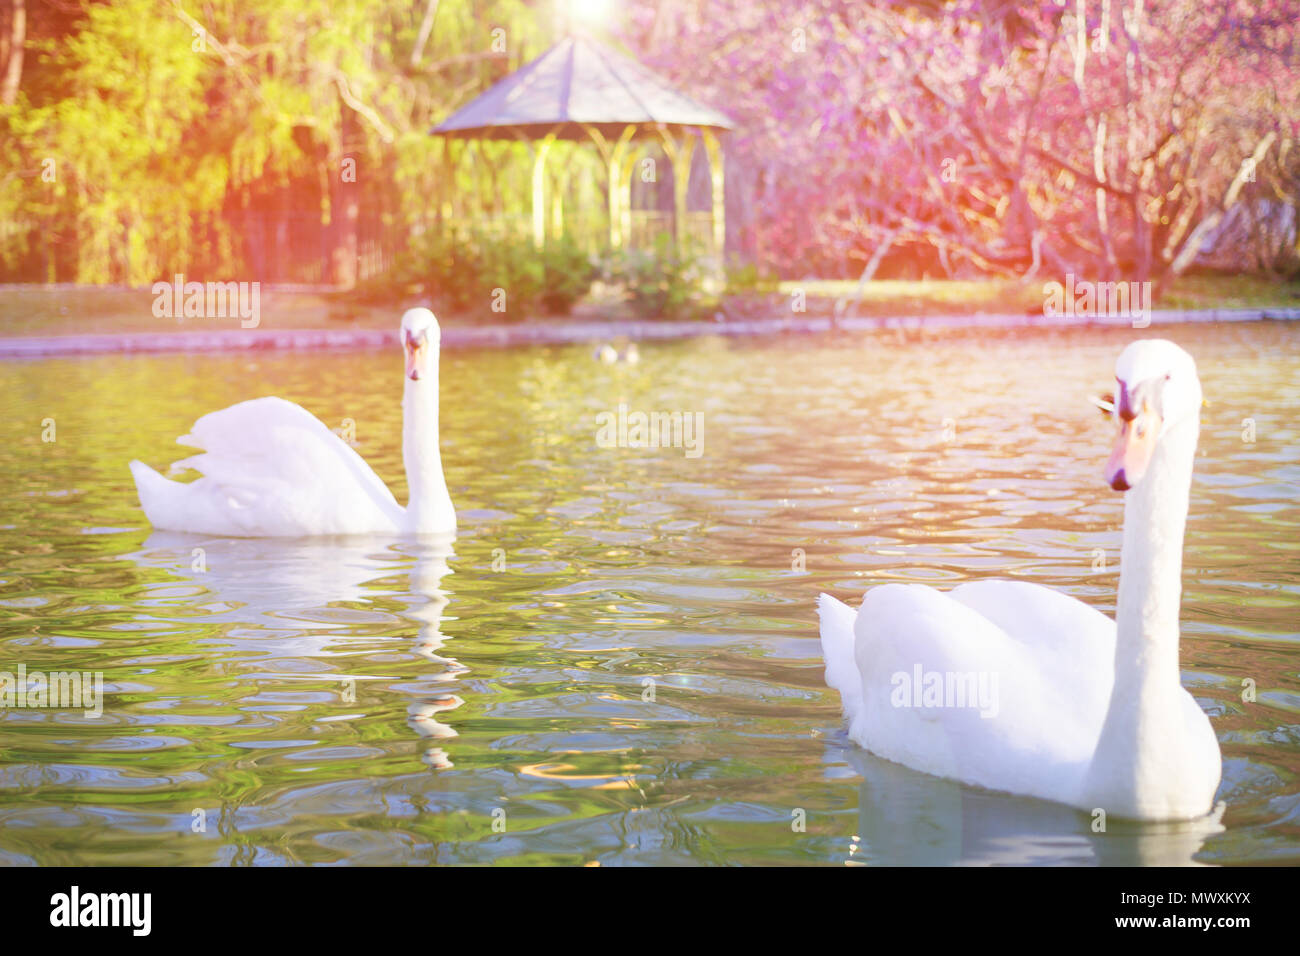 Blurred image concept, Beautiful white swan with sweet color sunset light and beautiful landscape, blurred background at the park in spring. - Stock Image